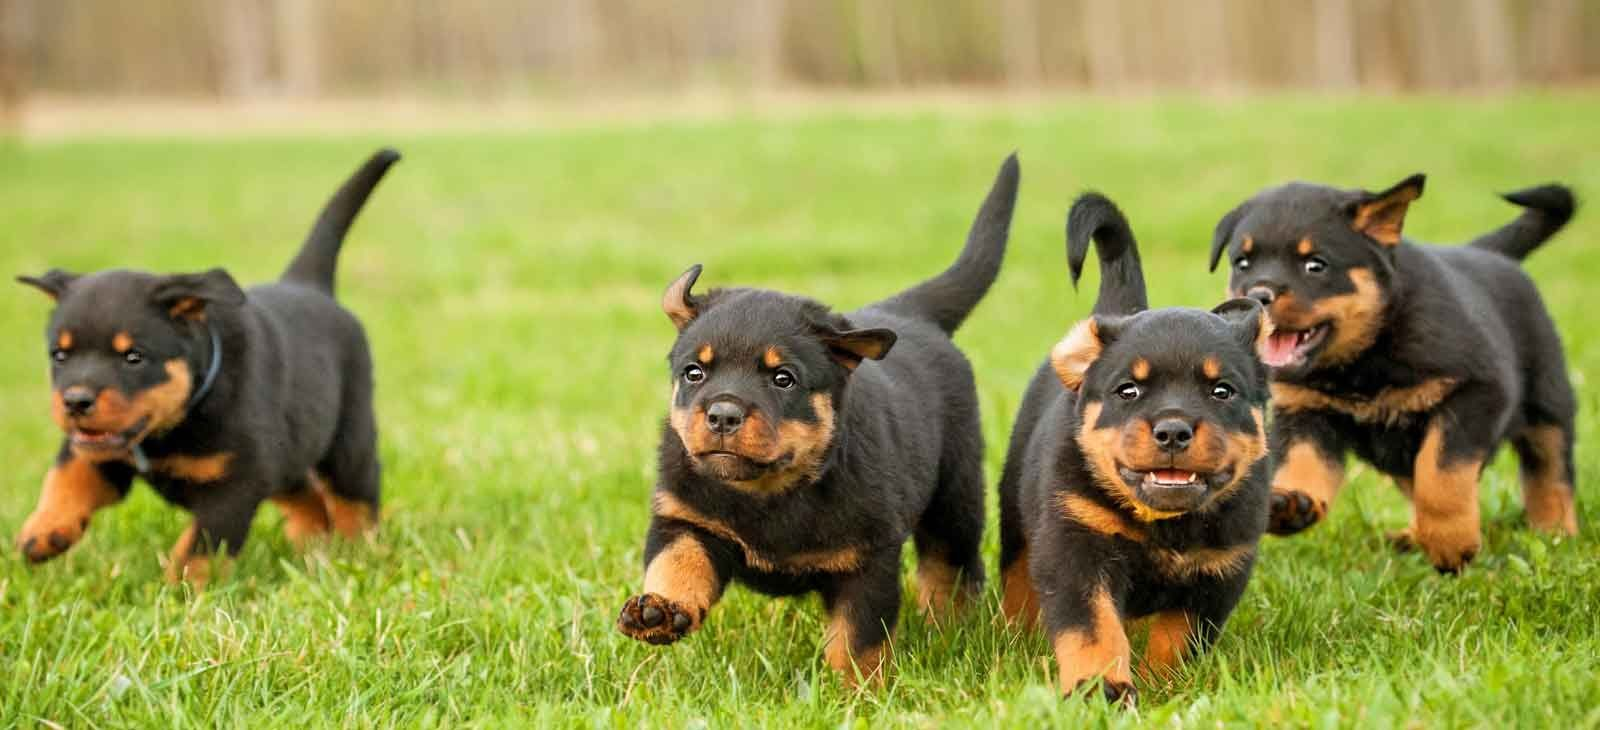 New Arrivals Greenfield Puppies Rottweiler Puppies Puppies